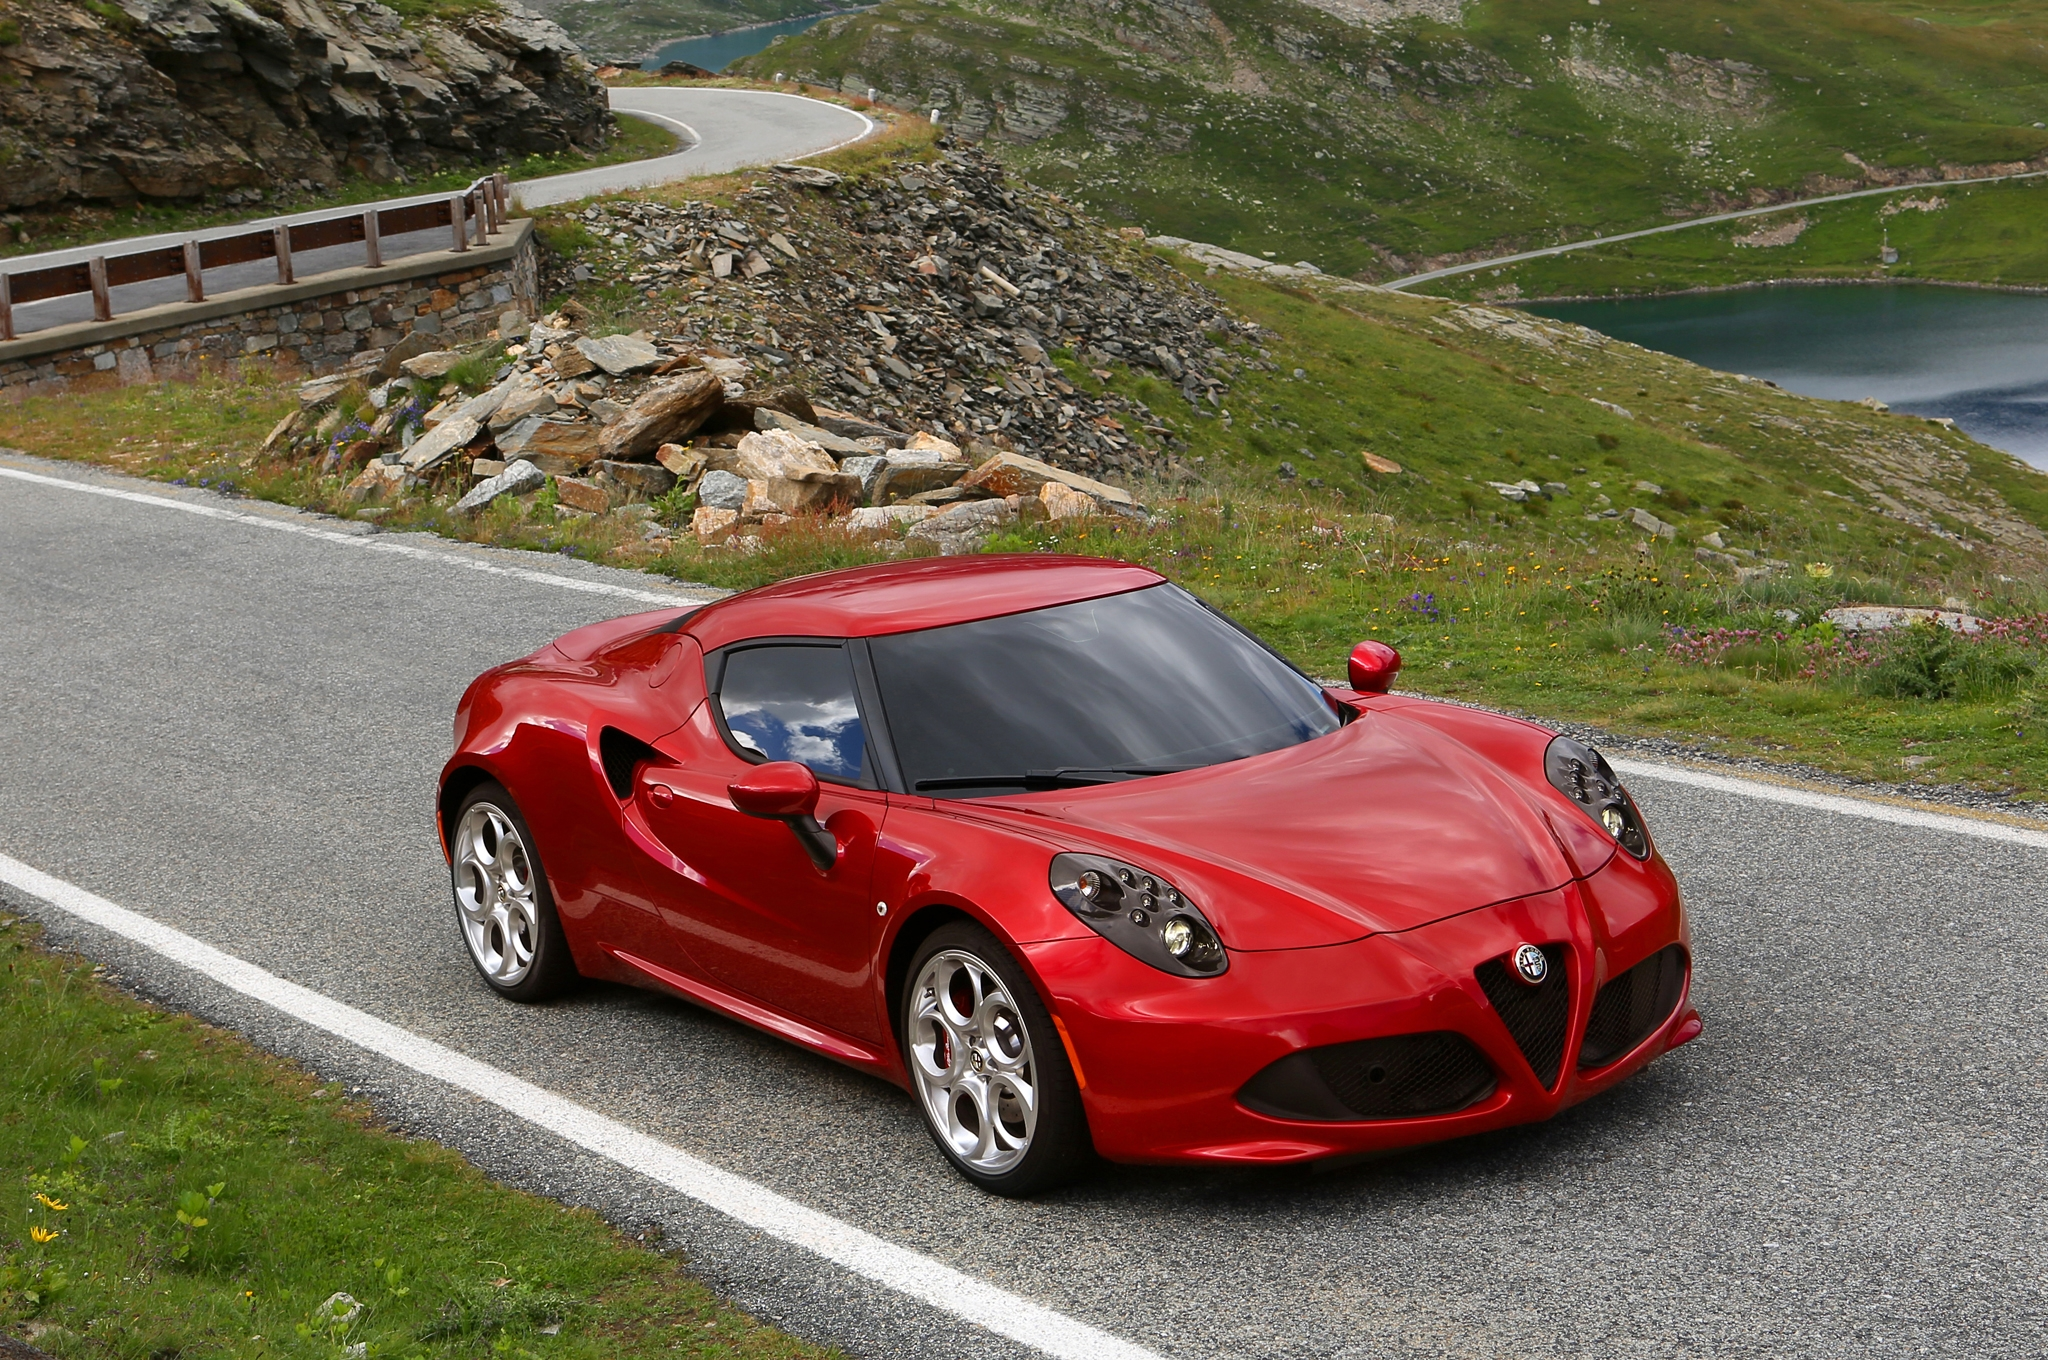 2014 Alfa Romeo 4c Red Exterior (Photo 5 of 25)